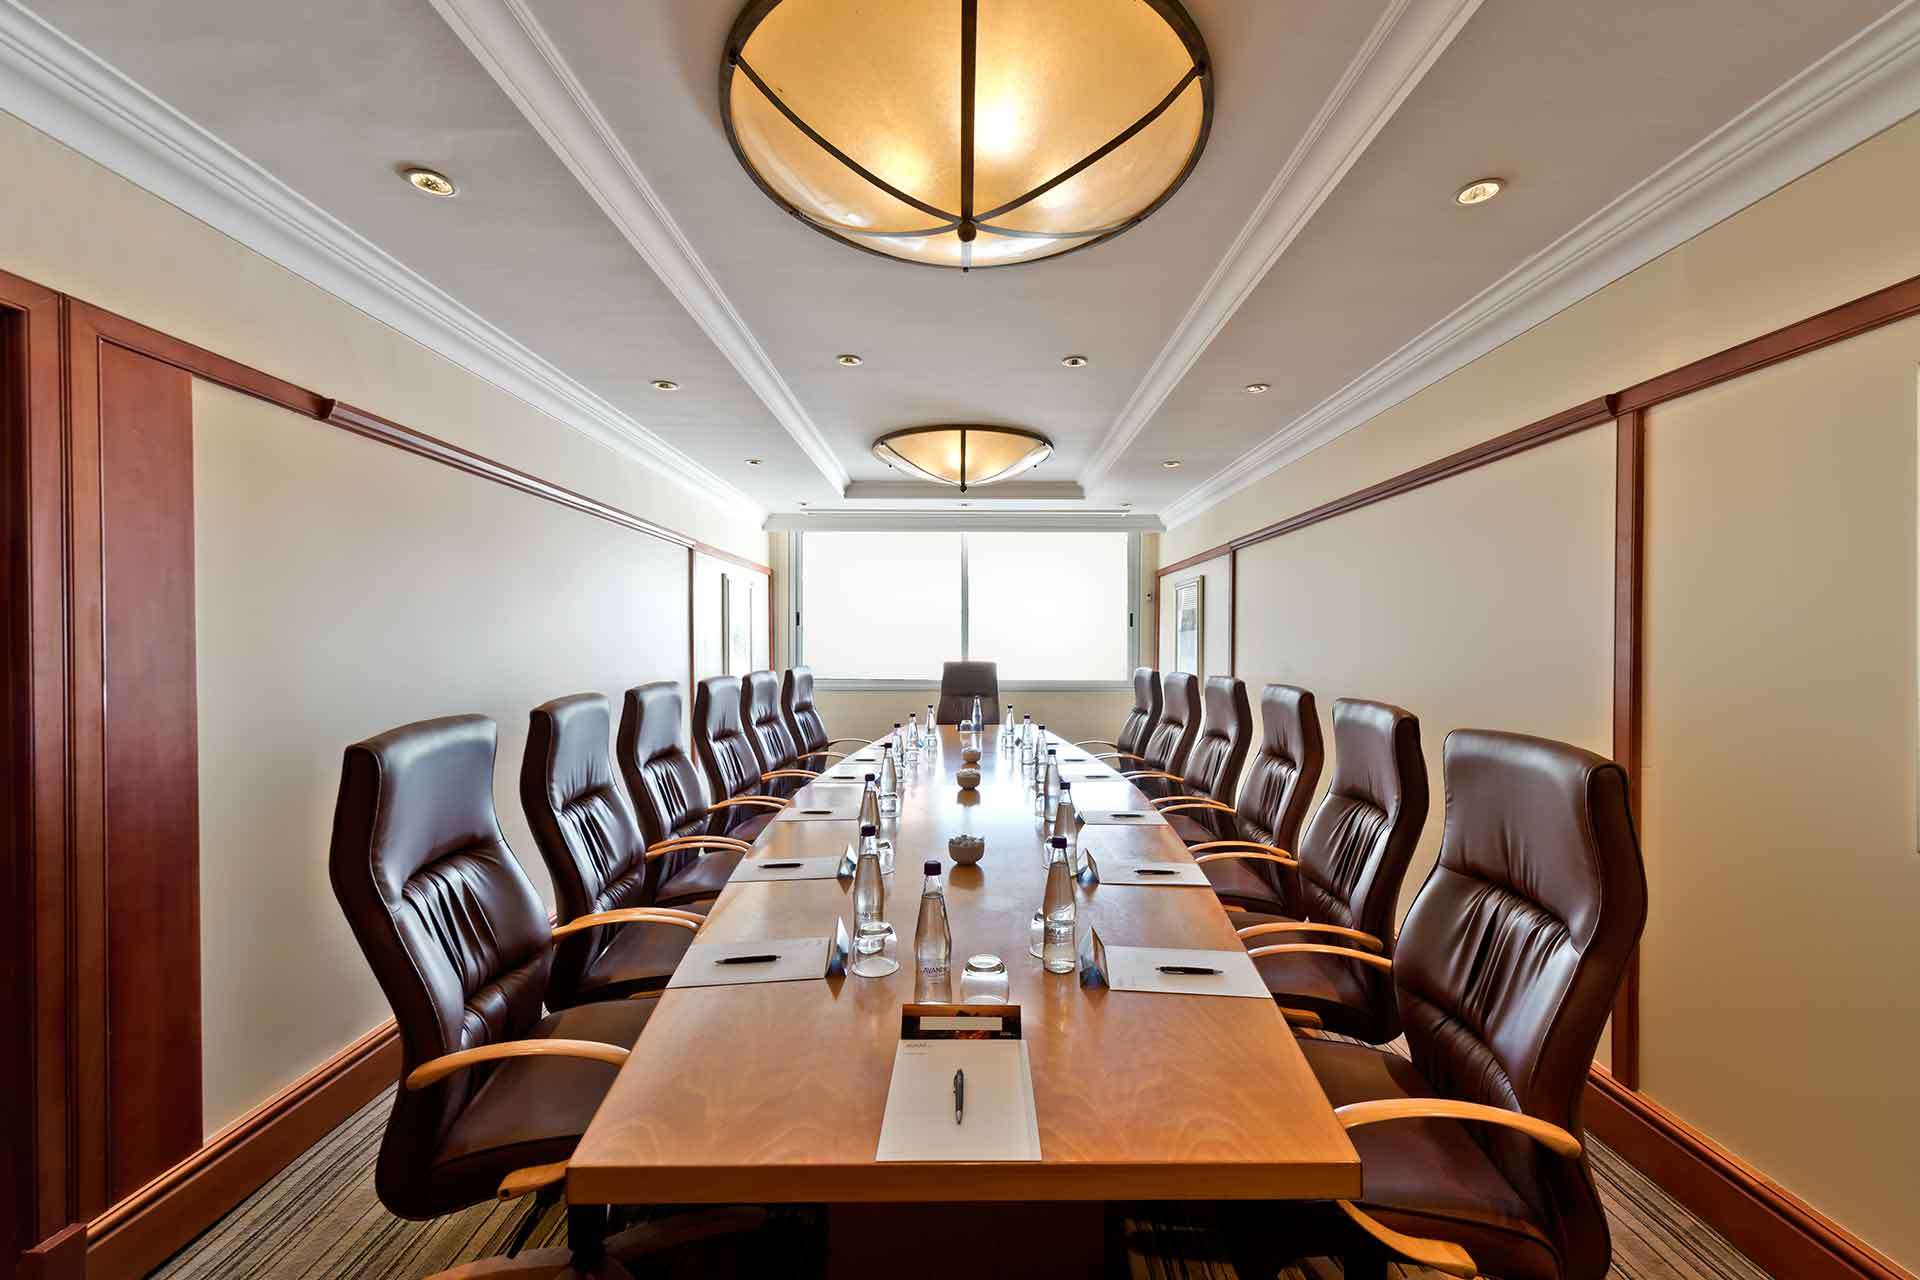 Images of the board room at AVANI Windhoek Hotel